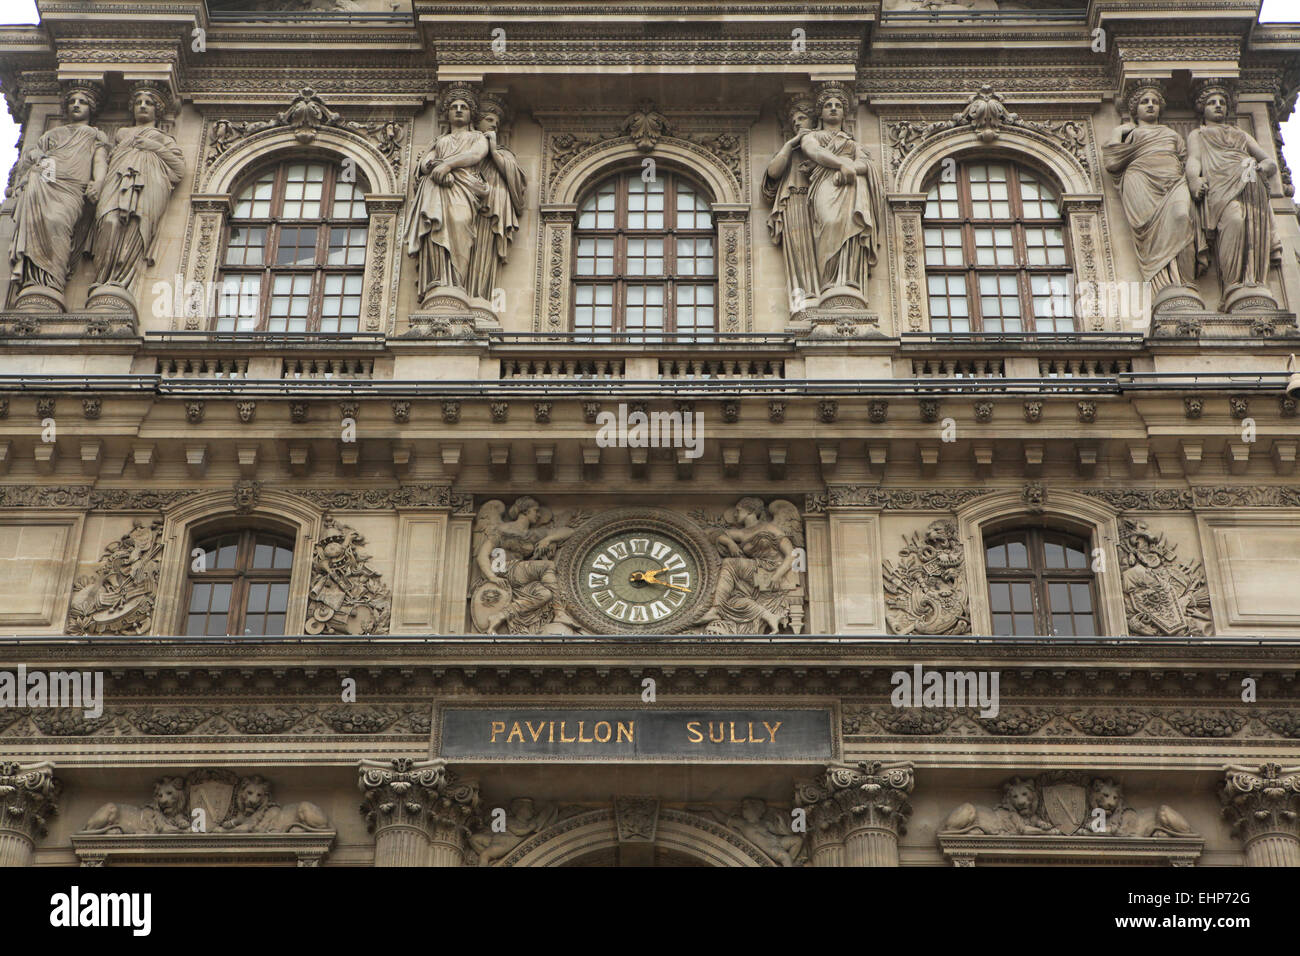 Renaissance wing of the Louvre Museum in Paris, France. - Stock Image